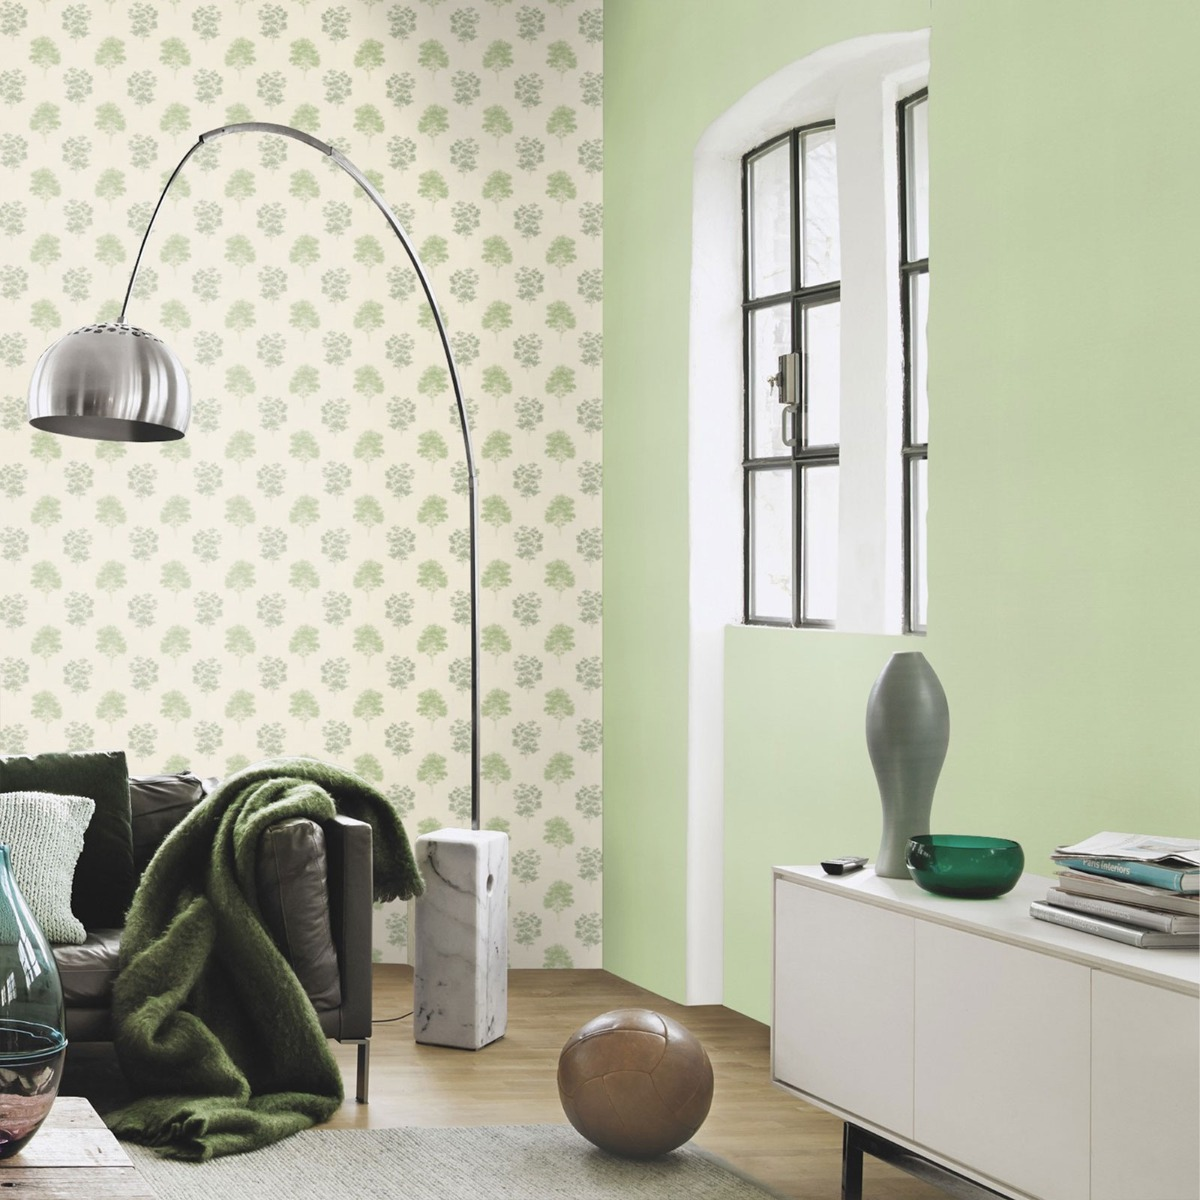 Lazy Sunday Tree Print Design Wallpaper Pastel Green Rasch 401530